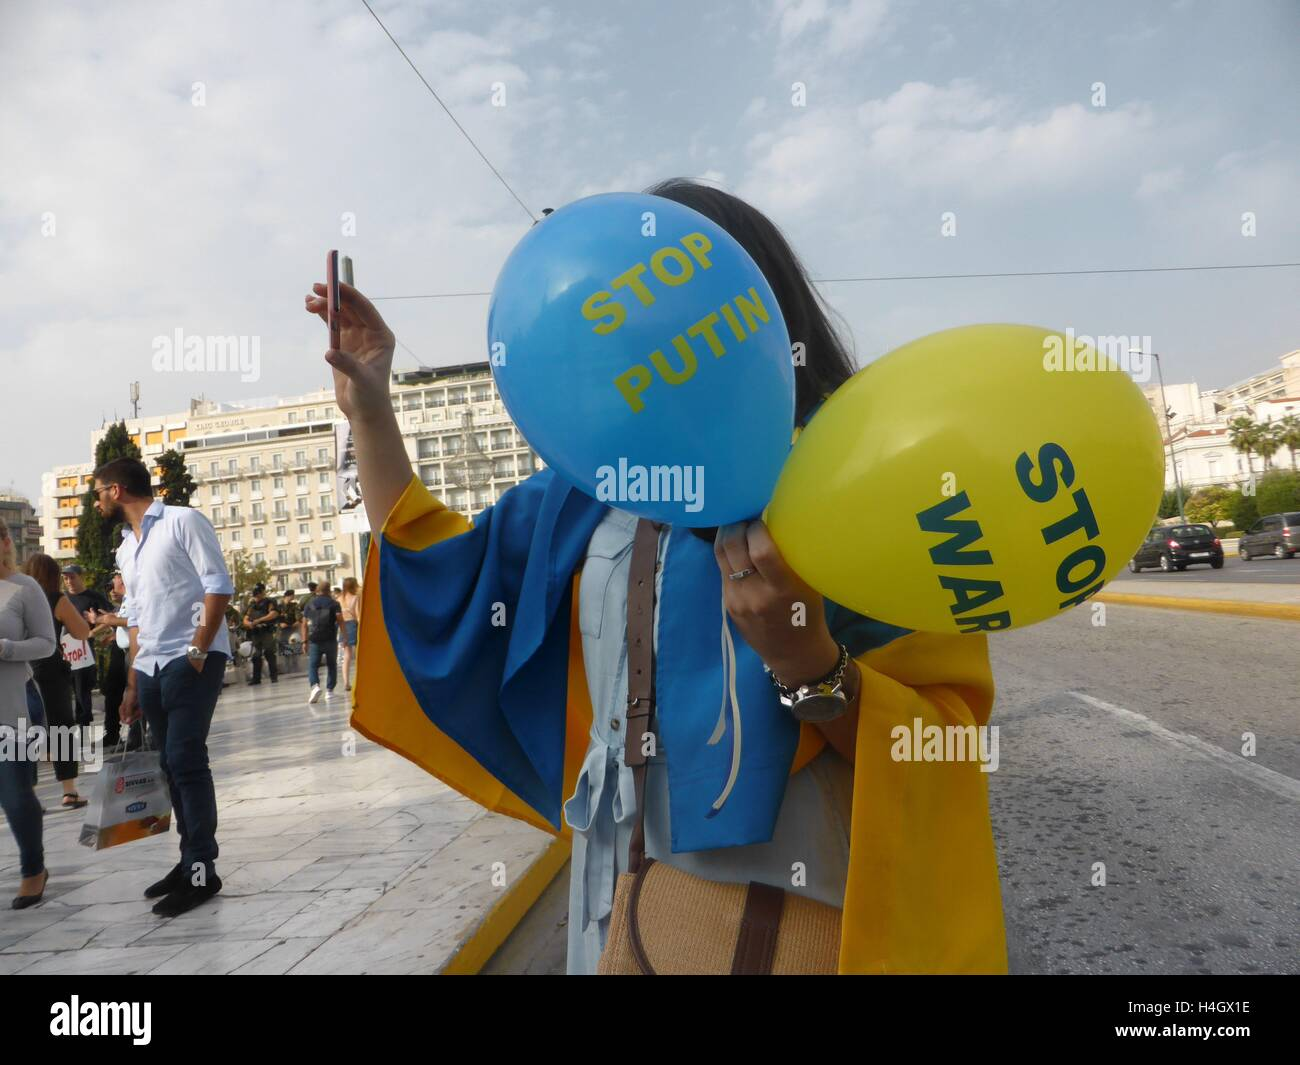 Athens, Greece. 16th Oct, 2016. A demonstrator holds ballons with the messages 'Stop Putin' and 'Stop War' on them. Stock Photo